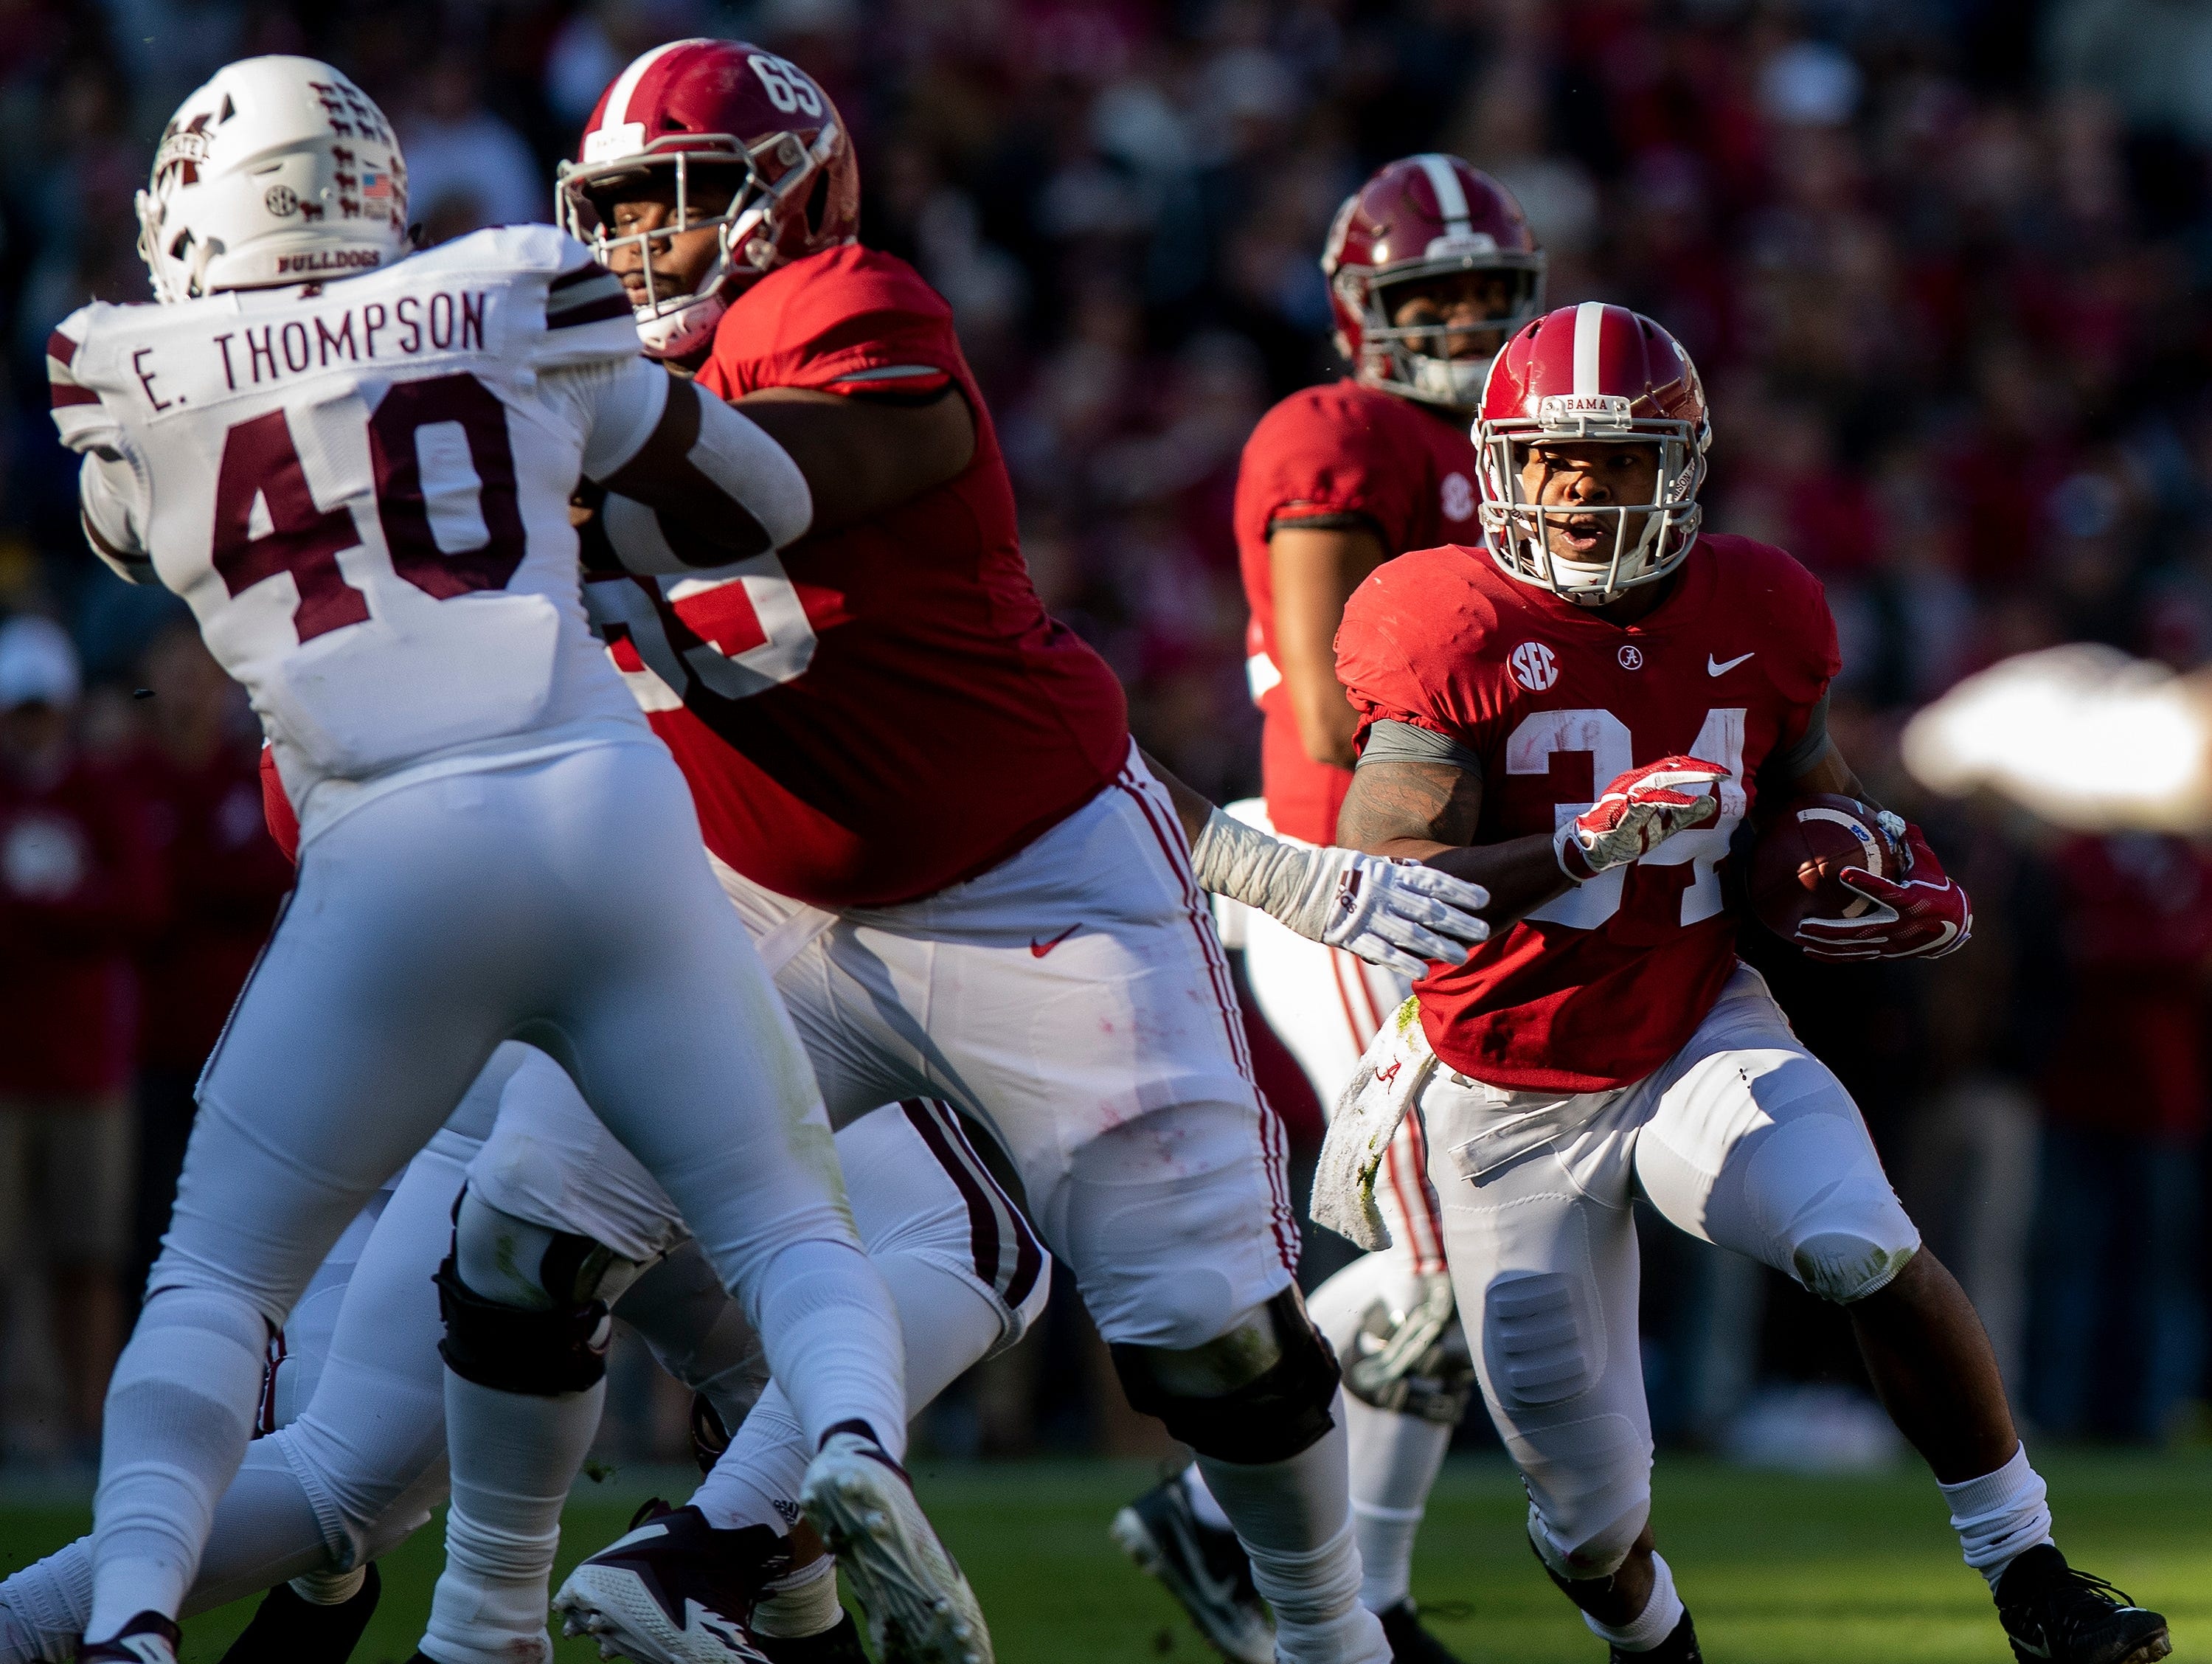 Alabama running back Damien Harris (34) carries the ball behind the blocking of Alabama offensive lineman Deonte Brown (65) against Mississippi State in first half action at Bryant Denny Stadium in Tuscaloosa, Ala., on Saturday November 9, 2018.